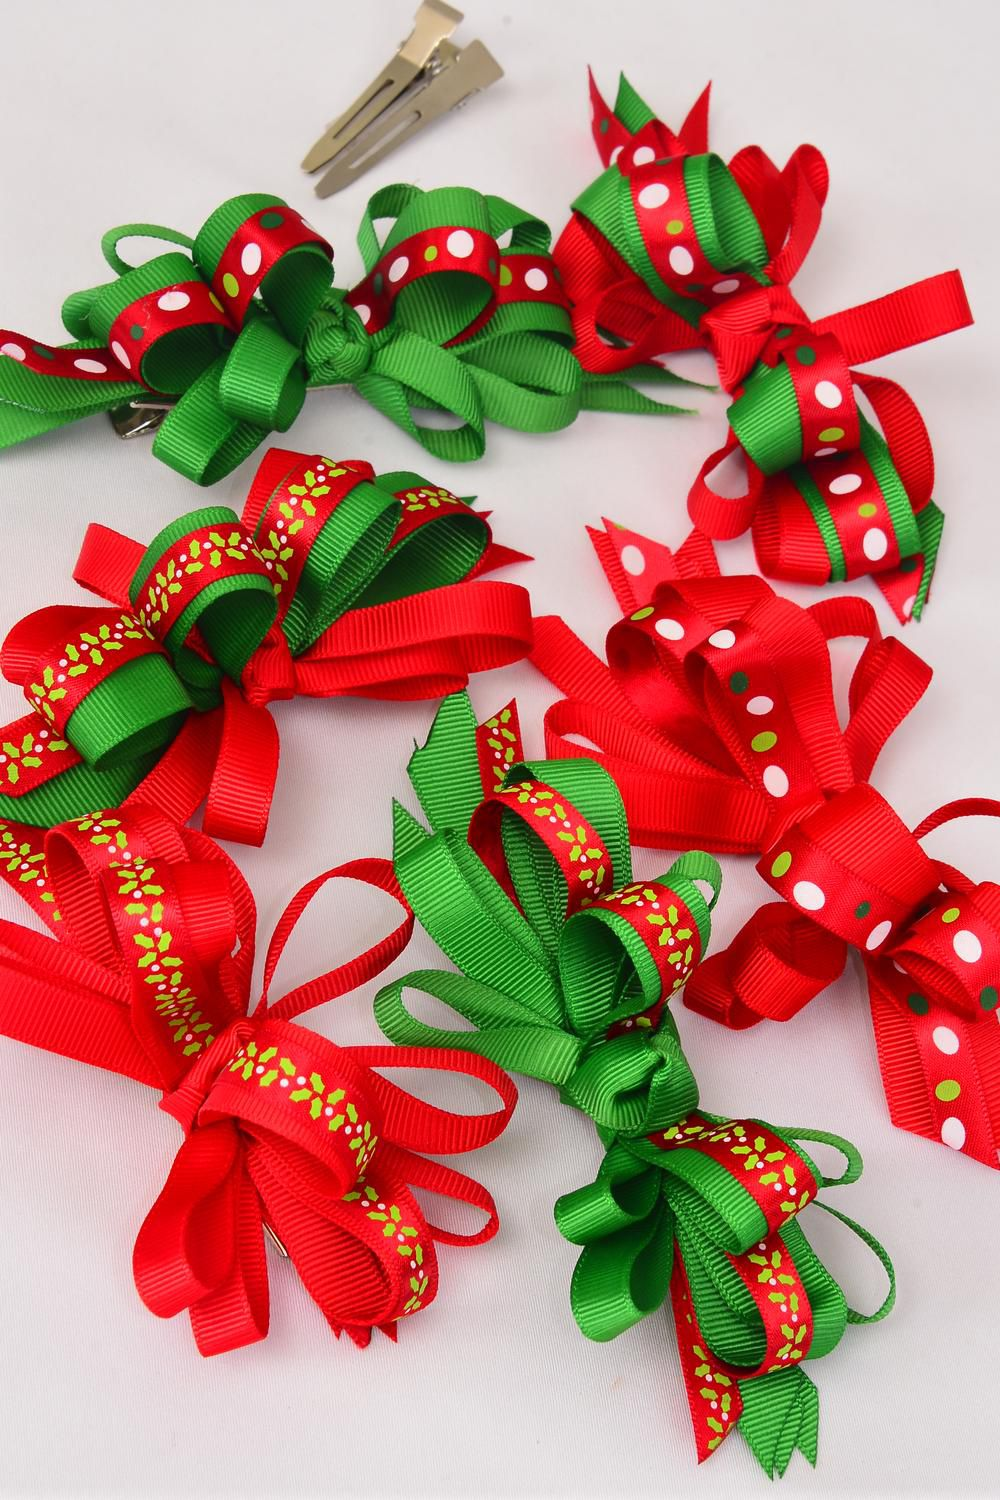 "Hair Bow Xmas Grosgrain Loop Bow Holly & Dots Mix Alligator Clip/DZ **Alligator Clip** Bow Size-4.5""x 3.5"" Wide,2 of each Color Asst,Display Card & UPC Code,W Clear Box"